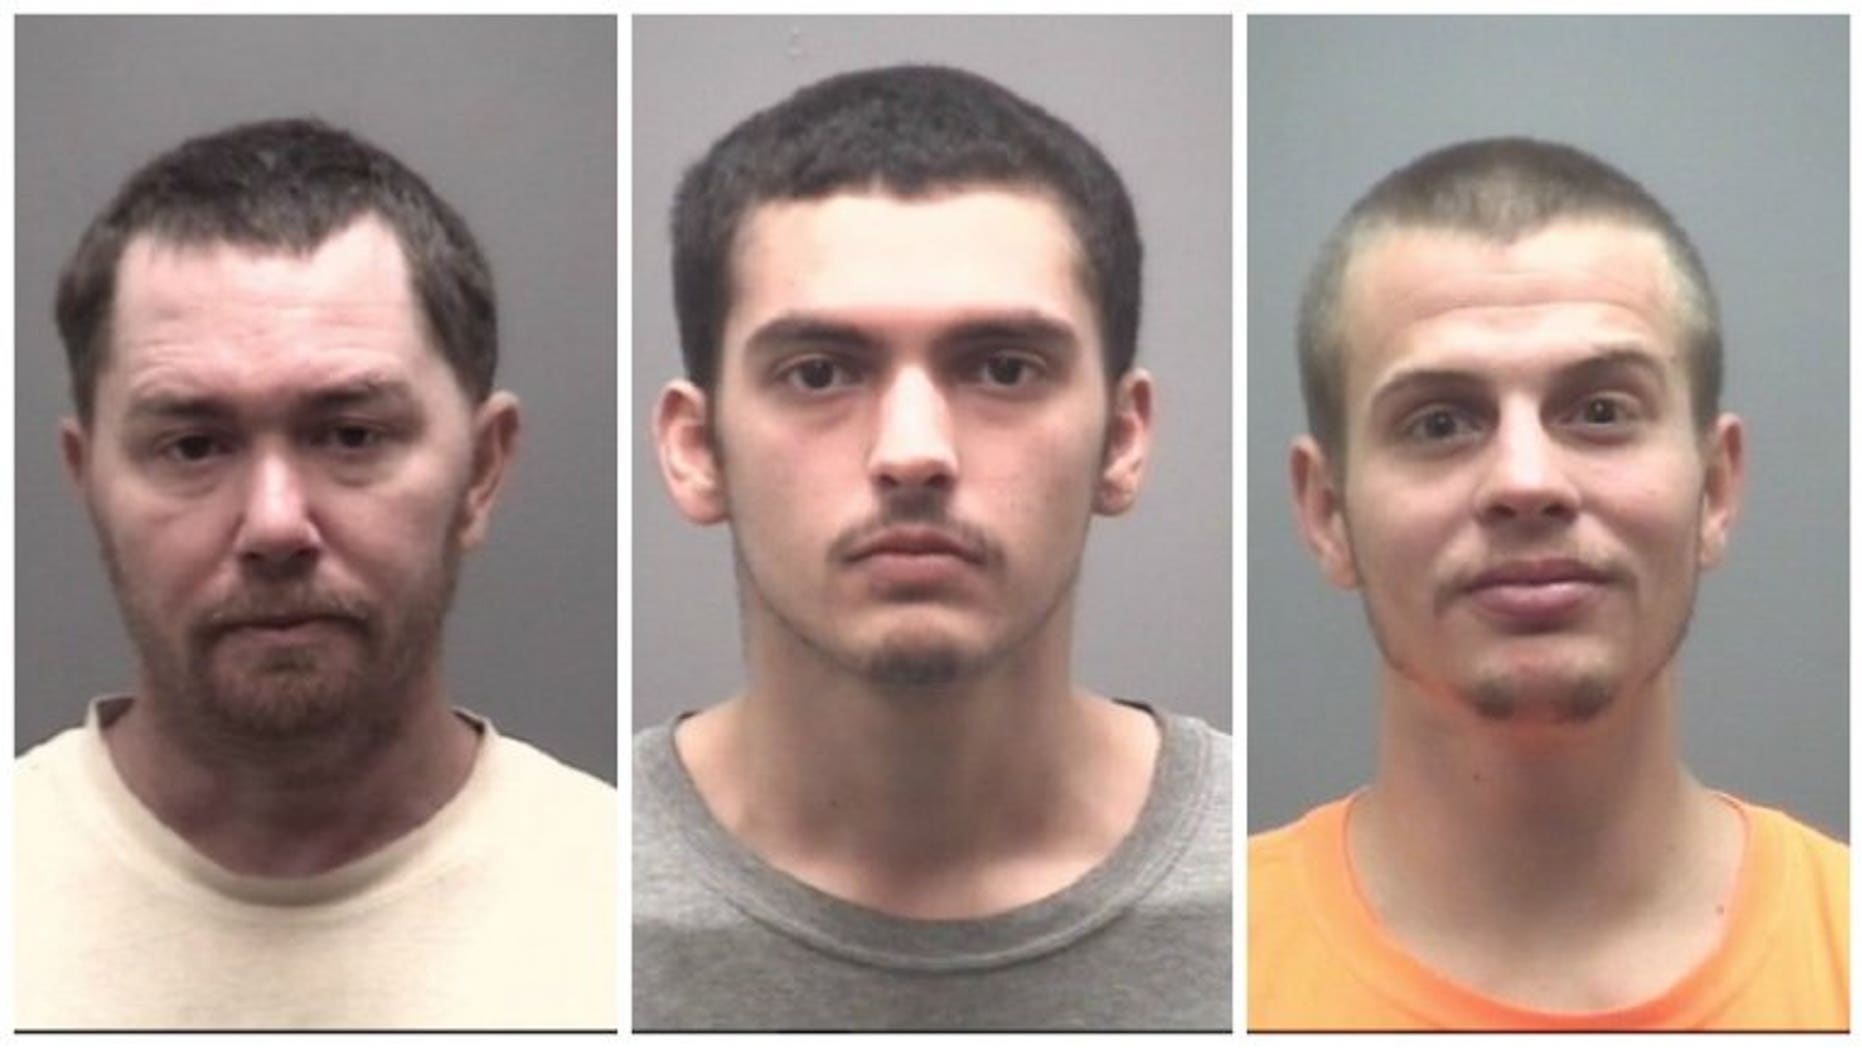 Sean Damion Castorina, 43, Shannon Douglas Gurkin, 23, and Dakota Lee Marek, 24, were charged for allegedly conspiring to blow up a jail to escape.